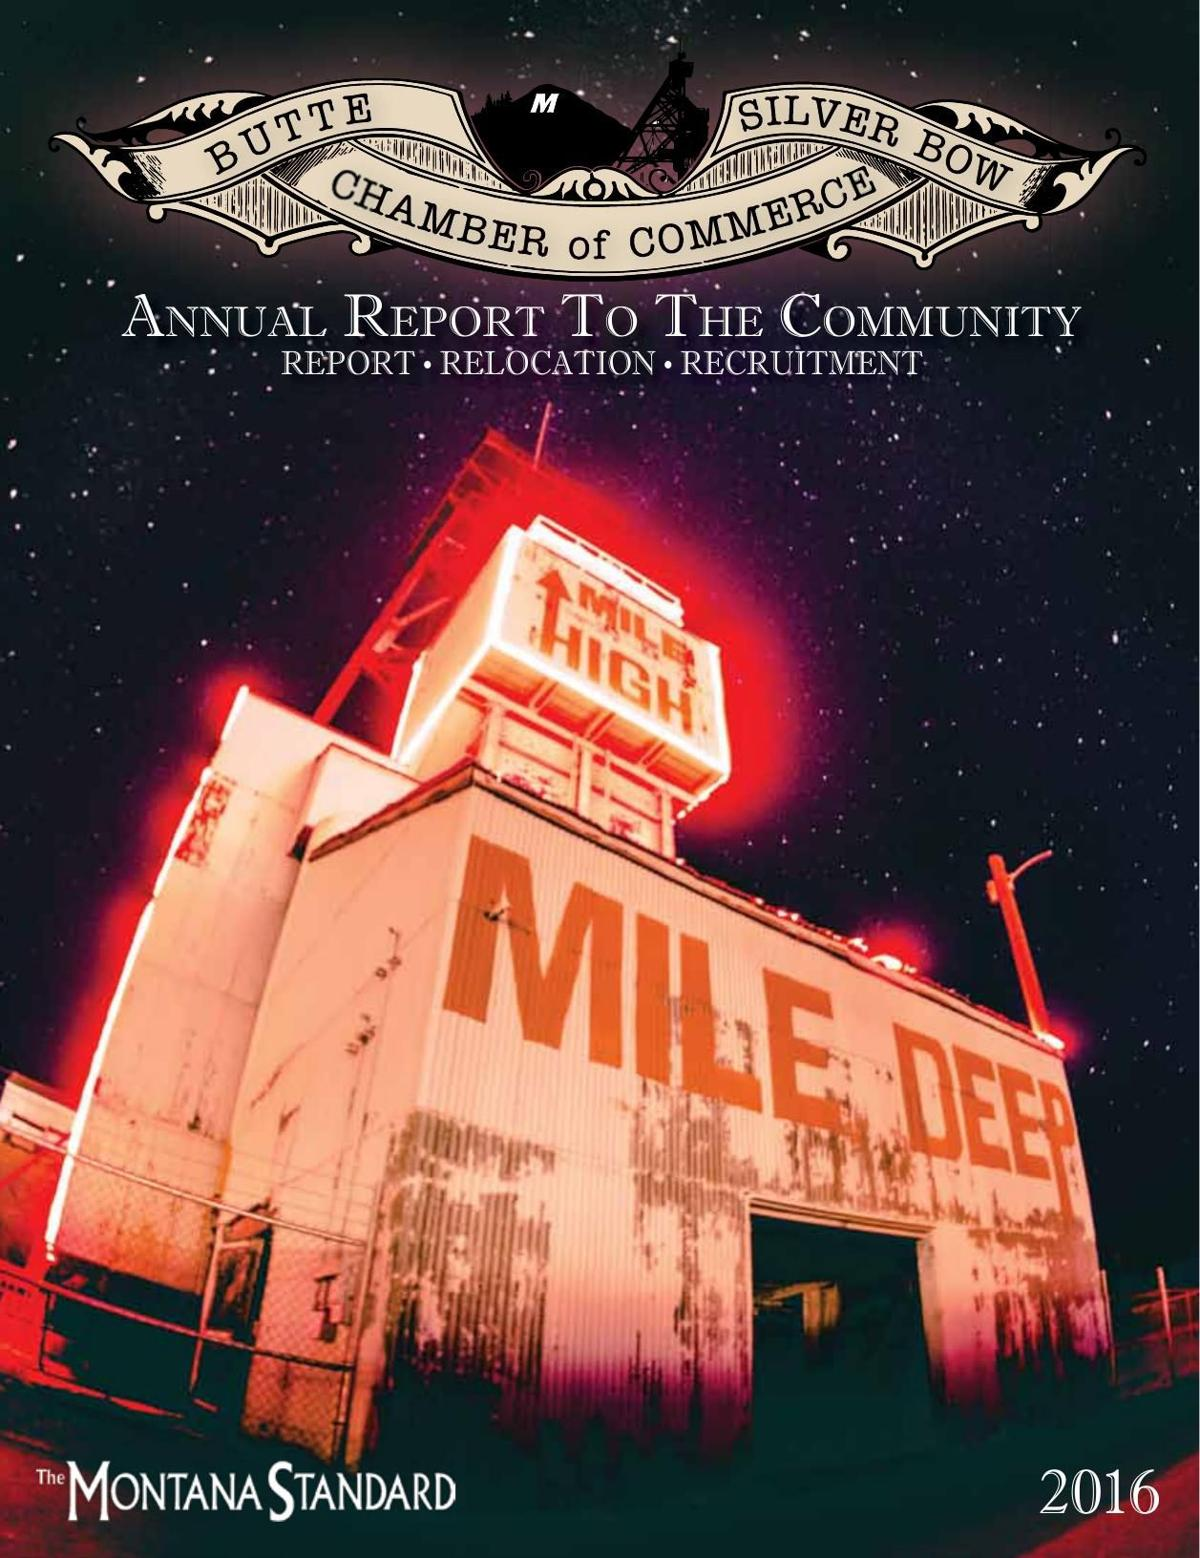 Butte Silver Bow Chamber of Commerce Report to the Community